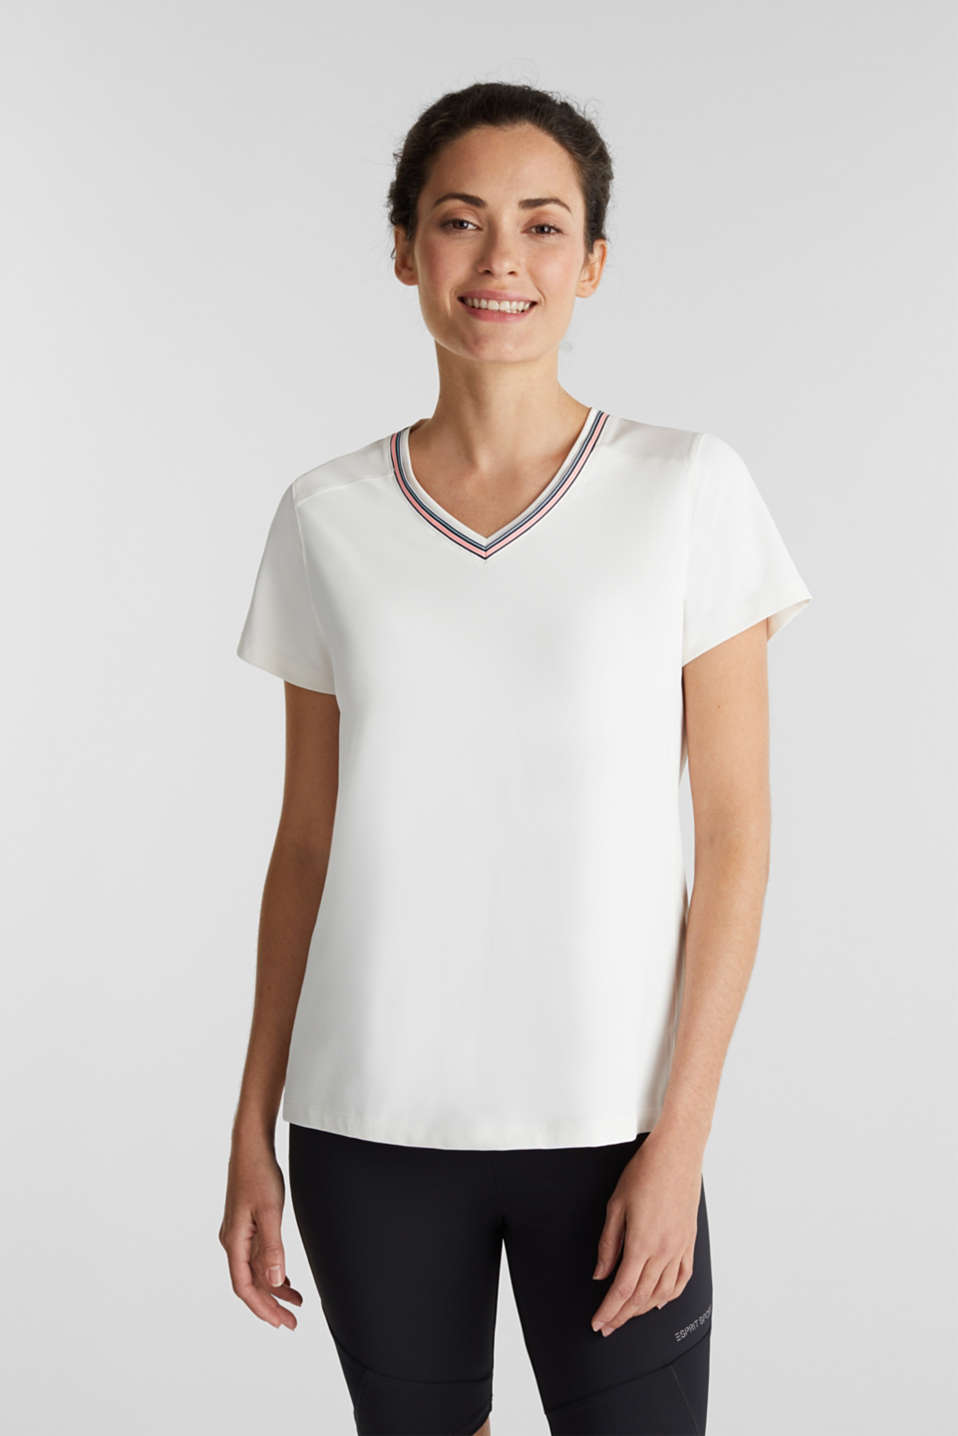 Esprit - V-neck T-shirt with open-work pattern, E-DRY